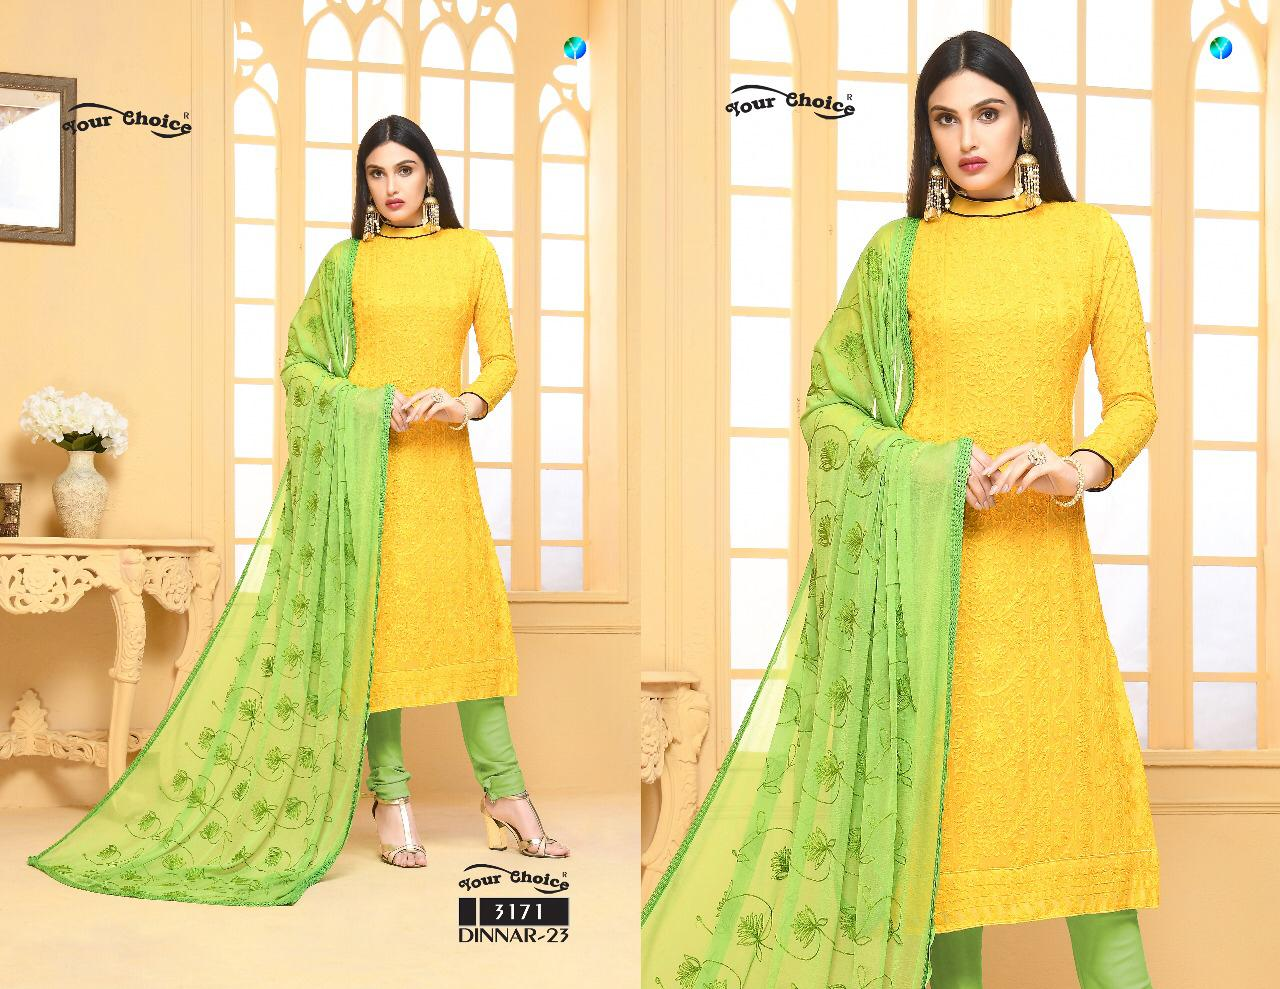 8266eb4109 Download Image Zip · Download PDF · Download Image Zip · Download PDF. Your  Choice Dinnar Vol 23 Chiffon with Embroidery Work Dress ...